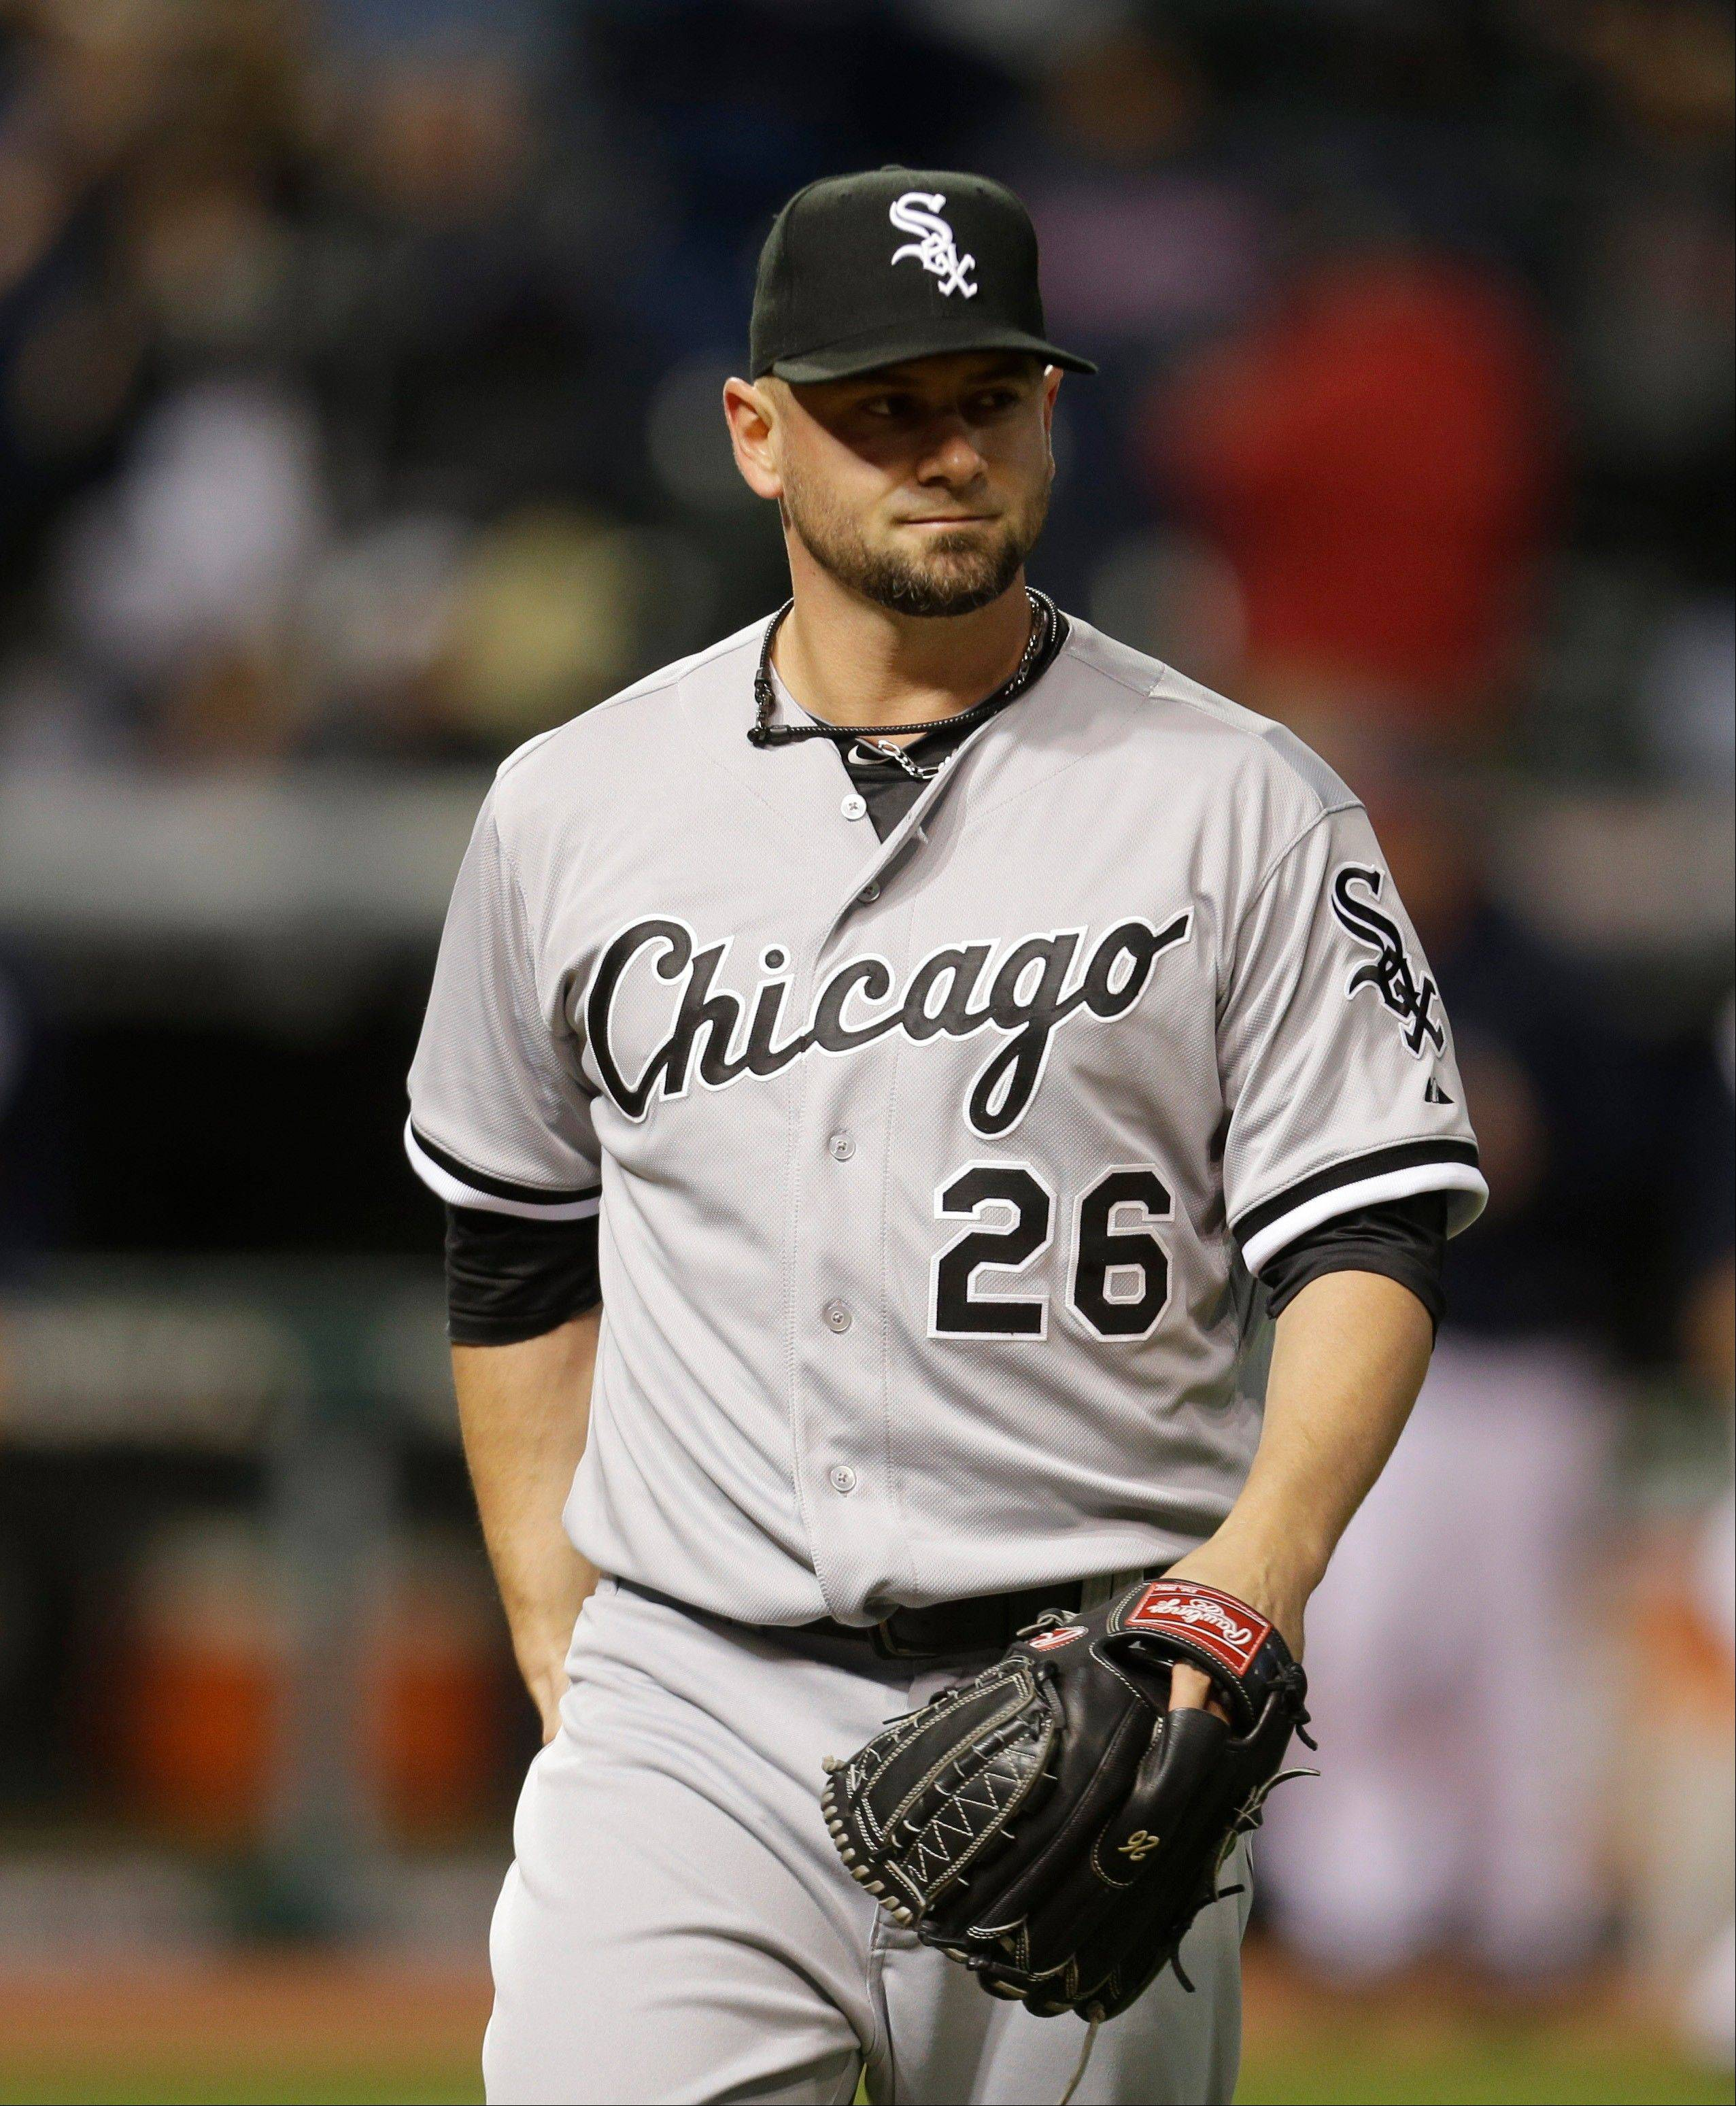 Chicago White Sox's Jesse Crain is now a member of the Tampa Bay Rays. The White Sox traded their all-star reliever, who set a team record this season by making 29 consecutive scoreless appearances.